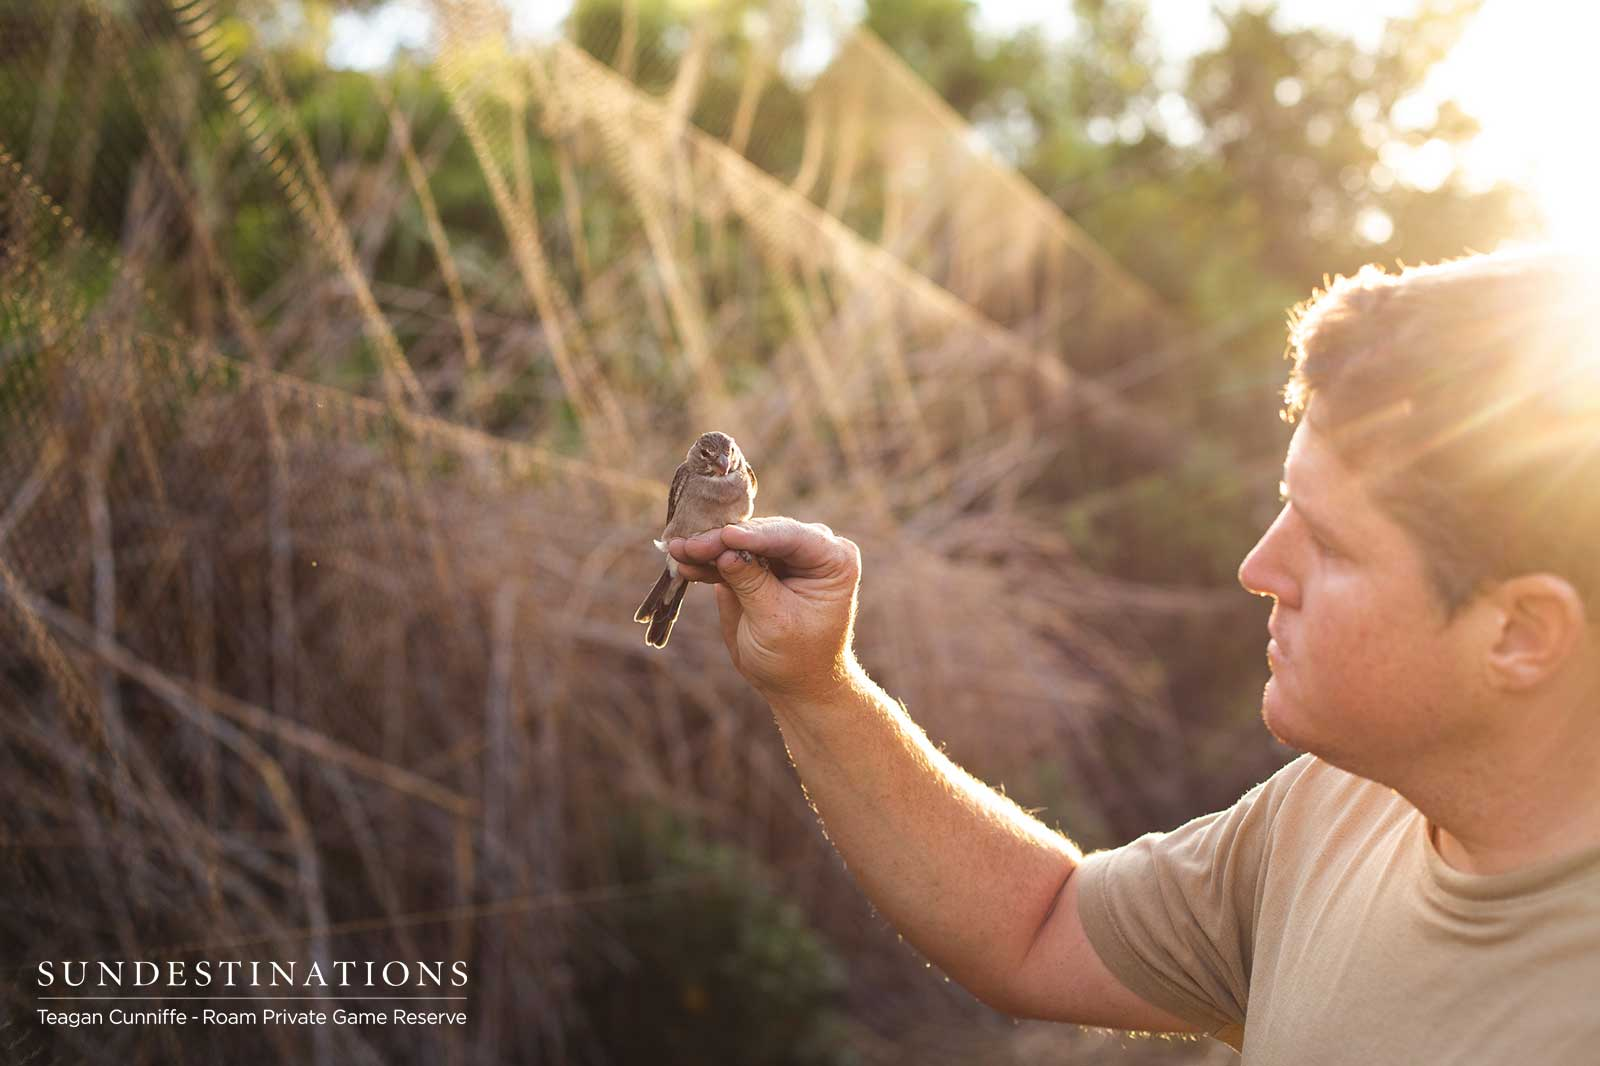 Bird-ringing at Roam Private Game Reserve